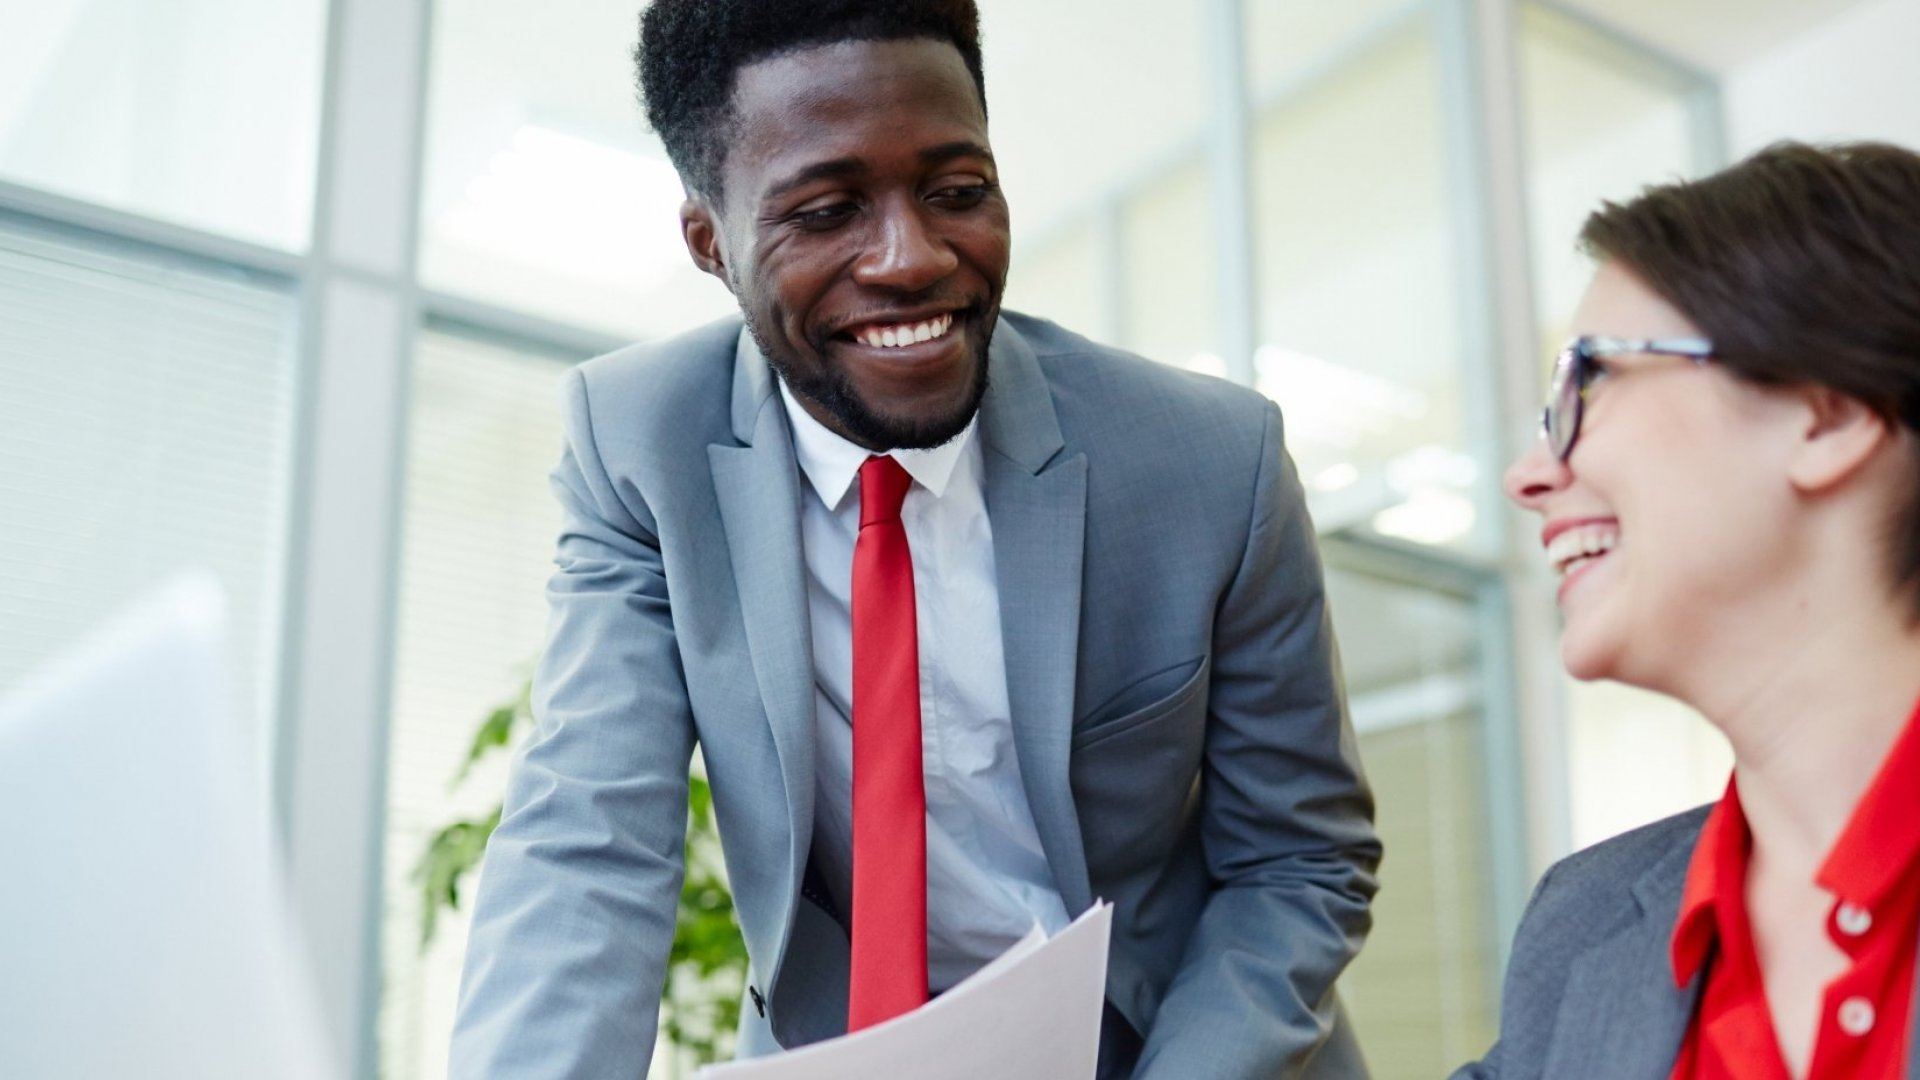 4 Tips Anyone Can Use to Be More Likable